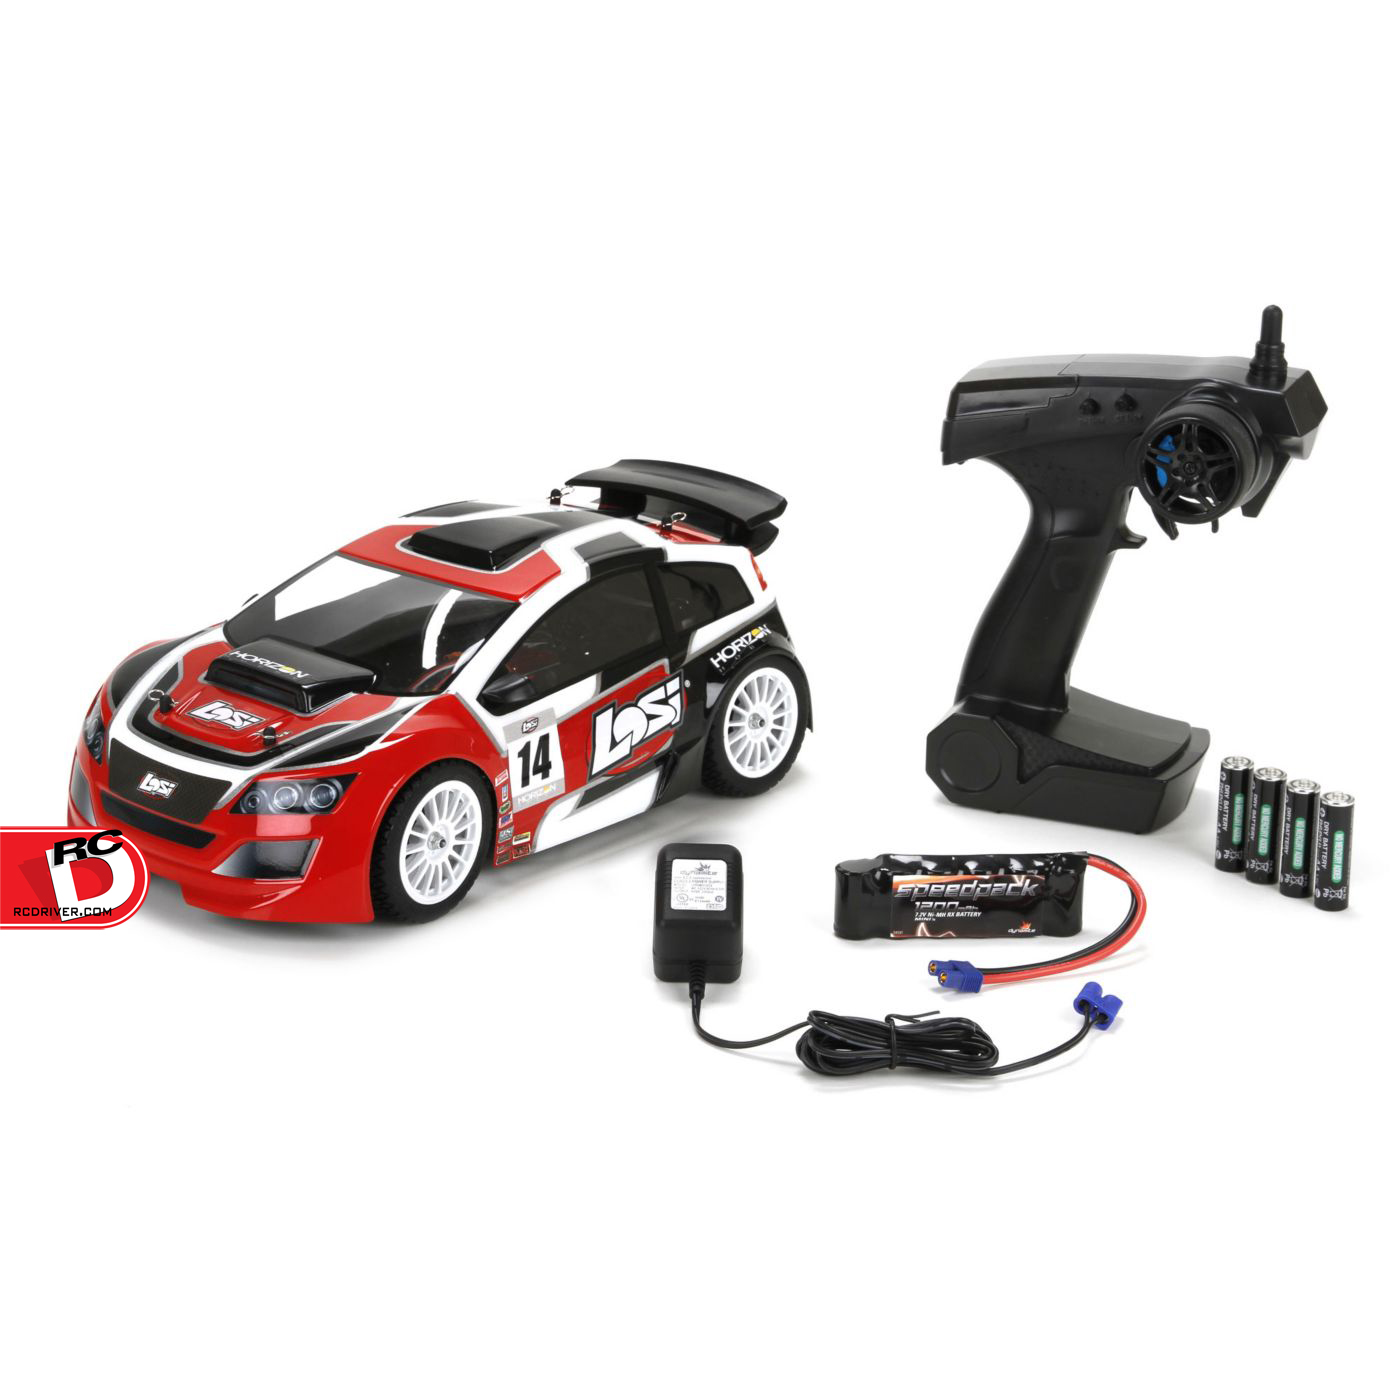 the losi 1 14 mini rally car. Black Bedroom Furniture Sets. Home Design Ideas